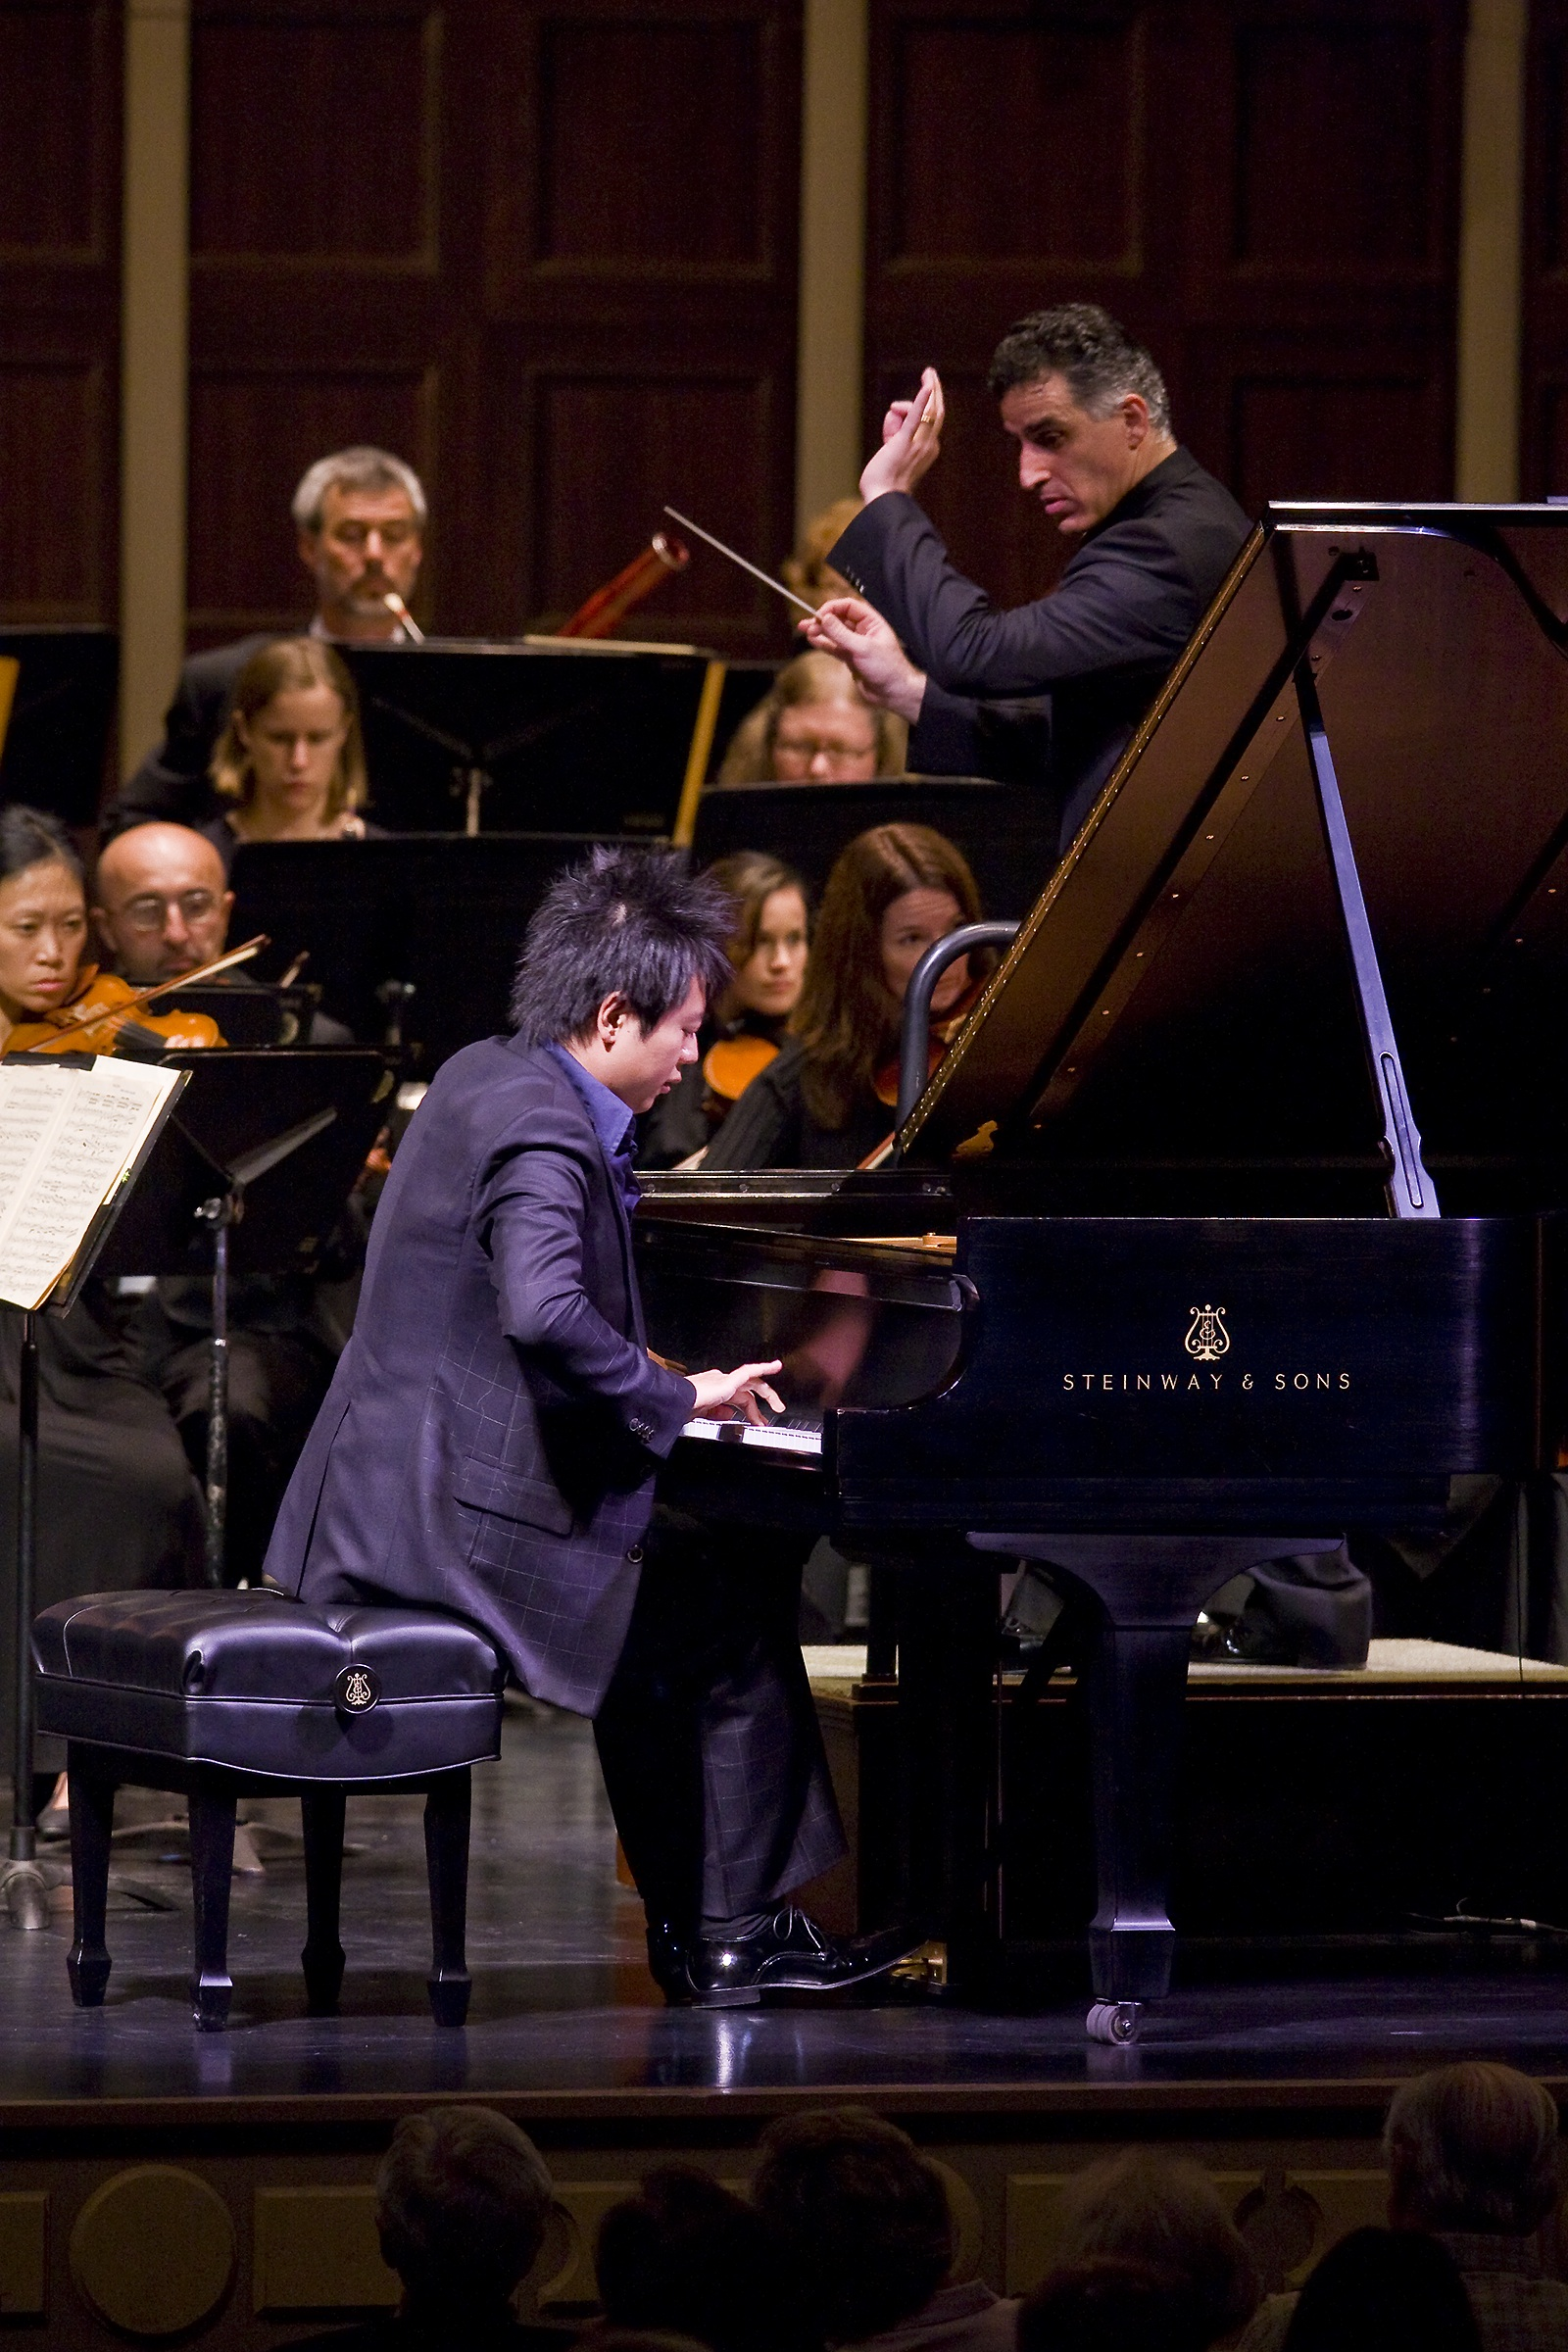 Concert with Lang Lang